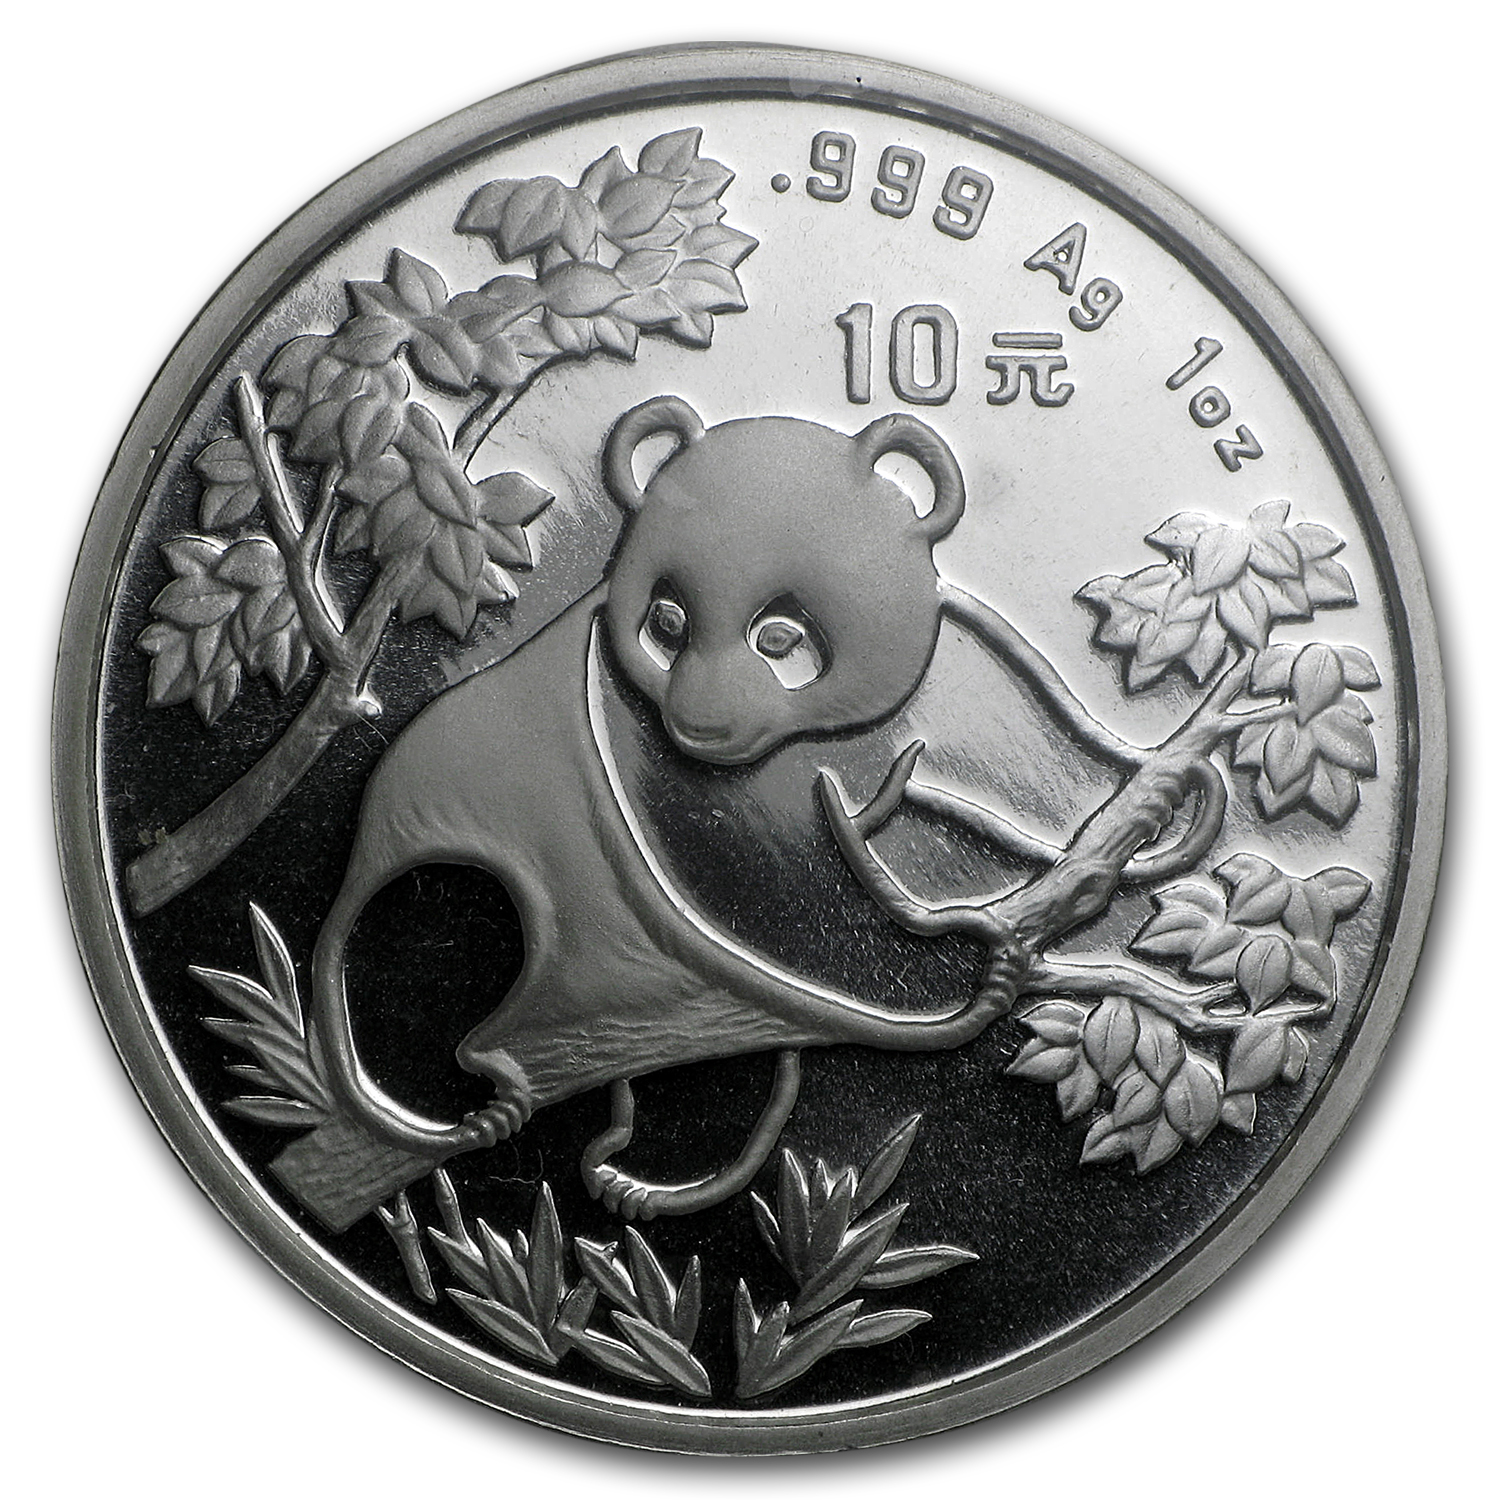 1992 1 oz Silver Chinese Panda - (Sealed) - Large Date